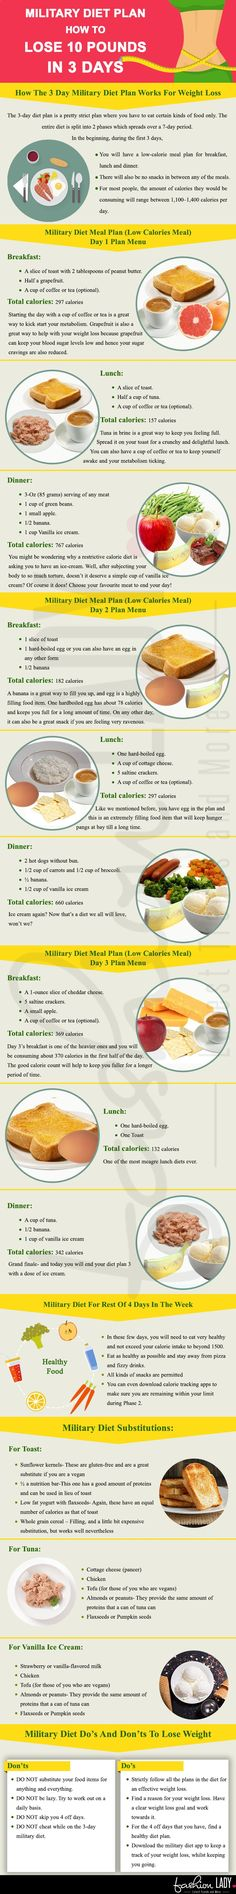 2 Week Diet Plan - 3 Week Diet Loss Weight - Military Diet Plan – Here's How You Can Lose 10 Pounds In 3 Days THE 3 WEEK DIET is a revolutionary new diet system that not only guarantees to help you lose weight — it promises to help you lose more weight — all body fat — faster than anything else you've ever tried. - A Foolproof, Science-Based System thats Guaranteed to Melt Away All Your Unwanted Stubborn Body Fat in Just 14 Days...No Matter How Hard You've Tried Before!